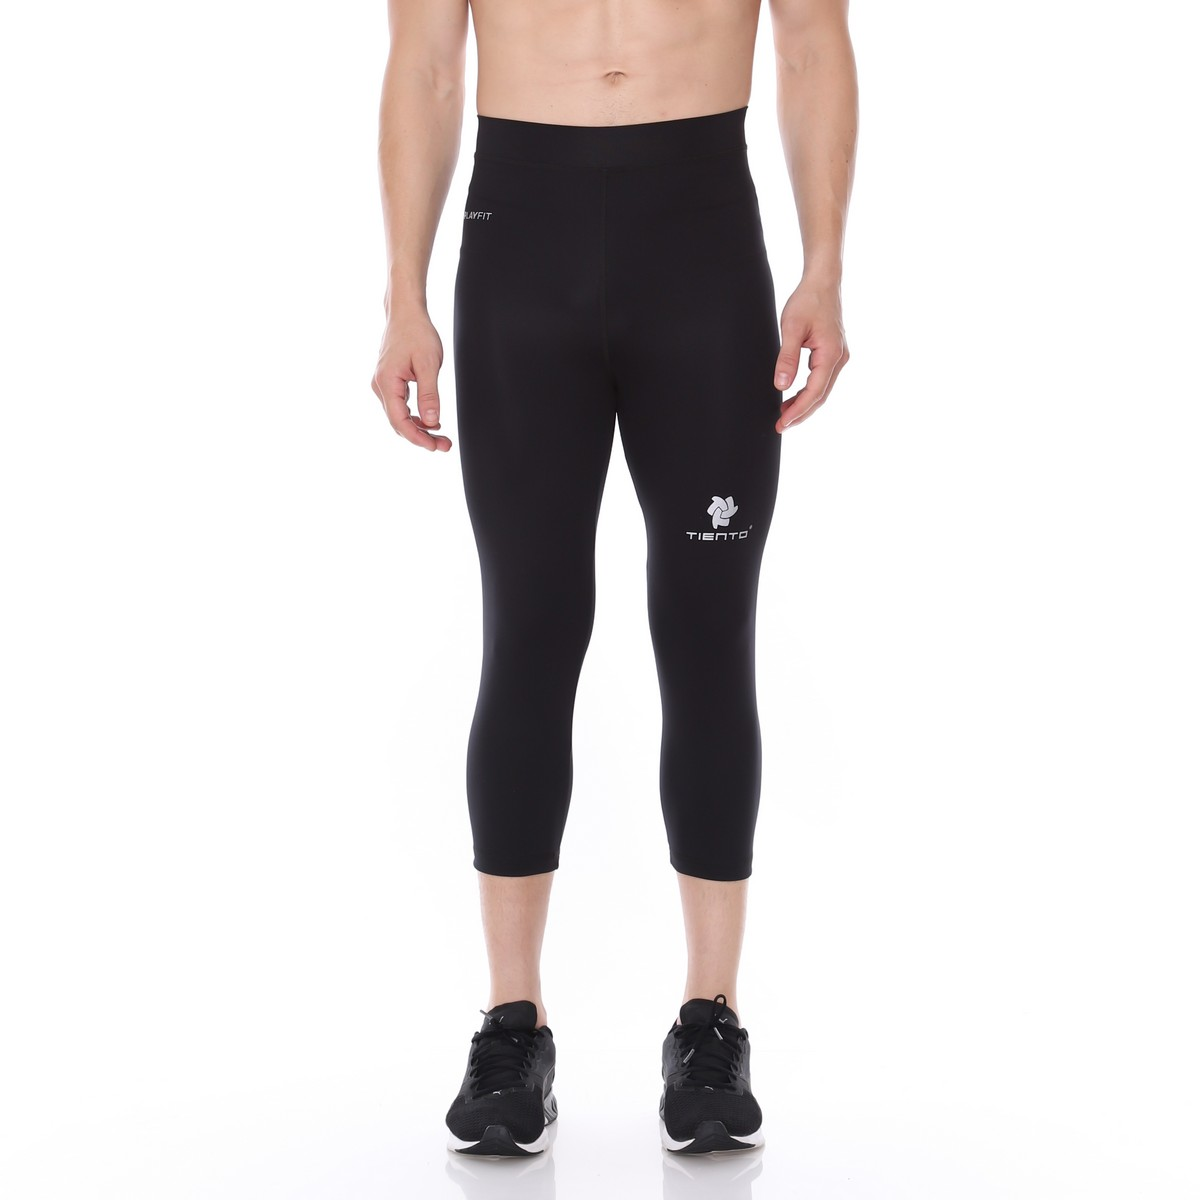 Celana Legging Sport 3 4 Pants Black Silver Men Tiento